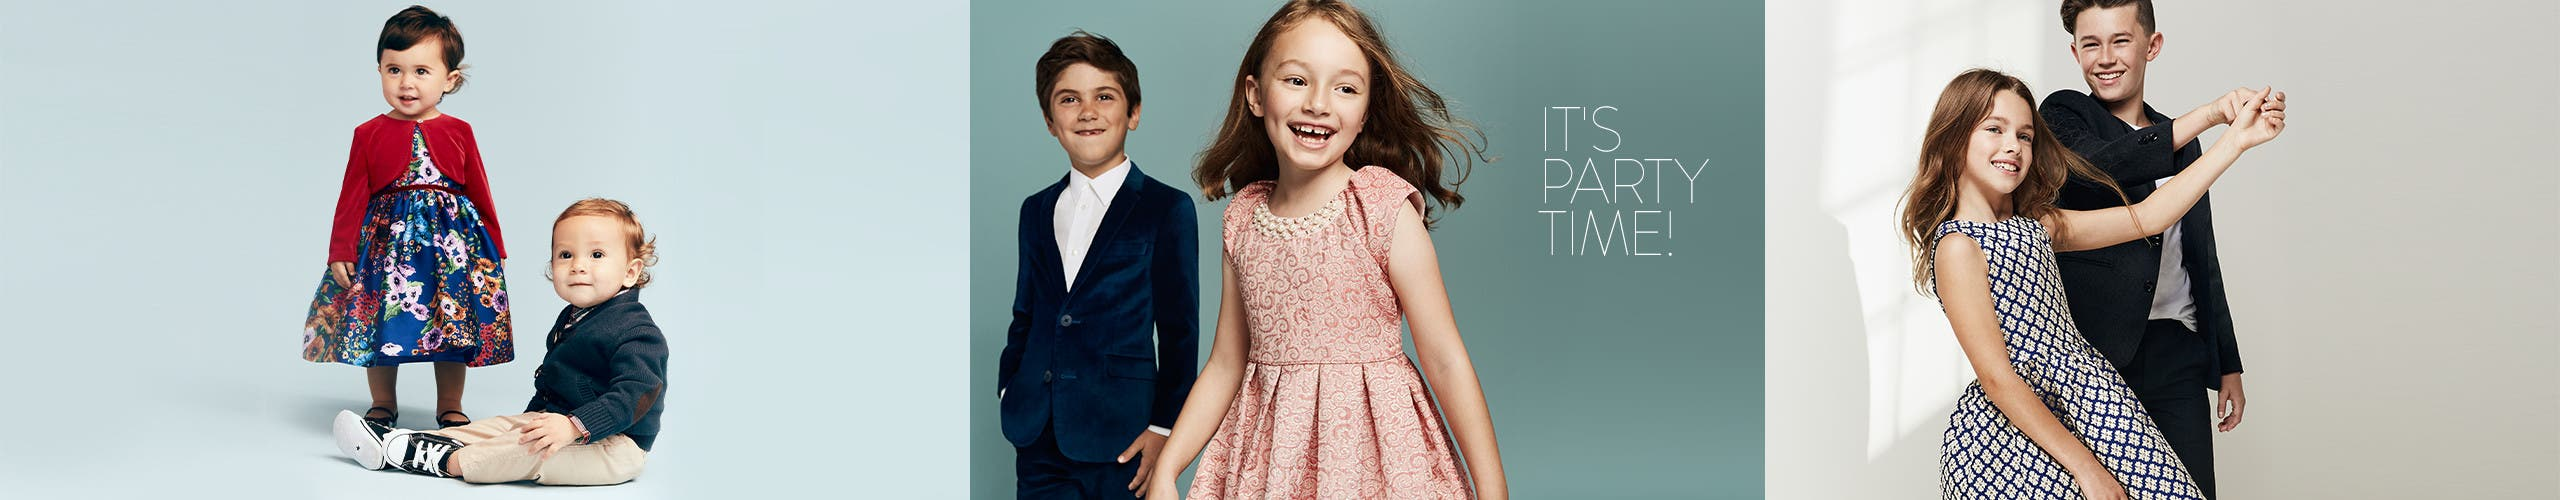 It's party time! Get them ready in kids' special-occasion clothing.